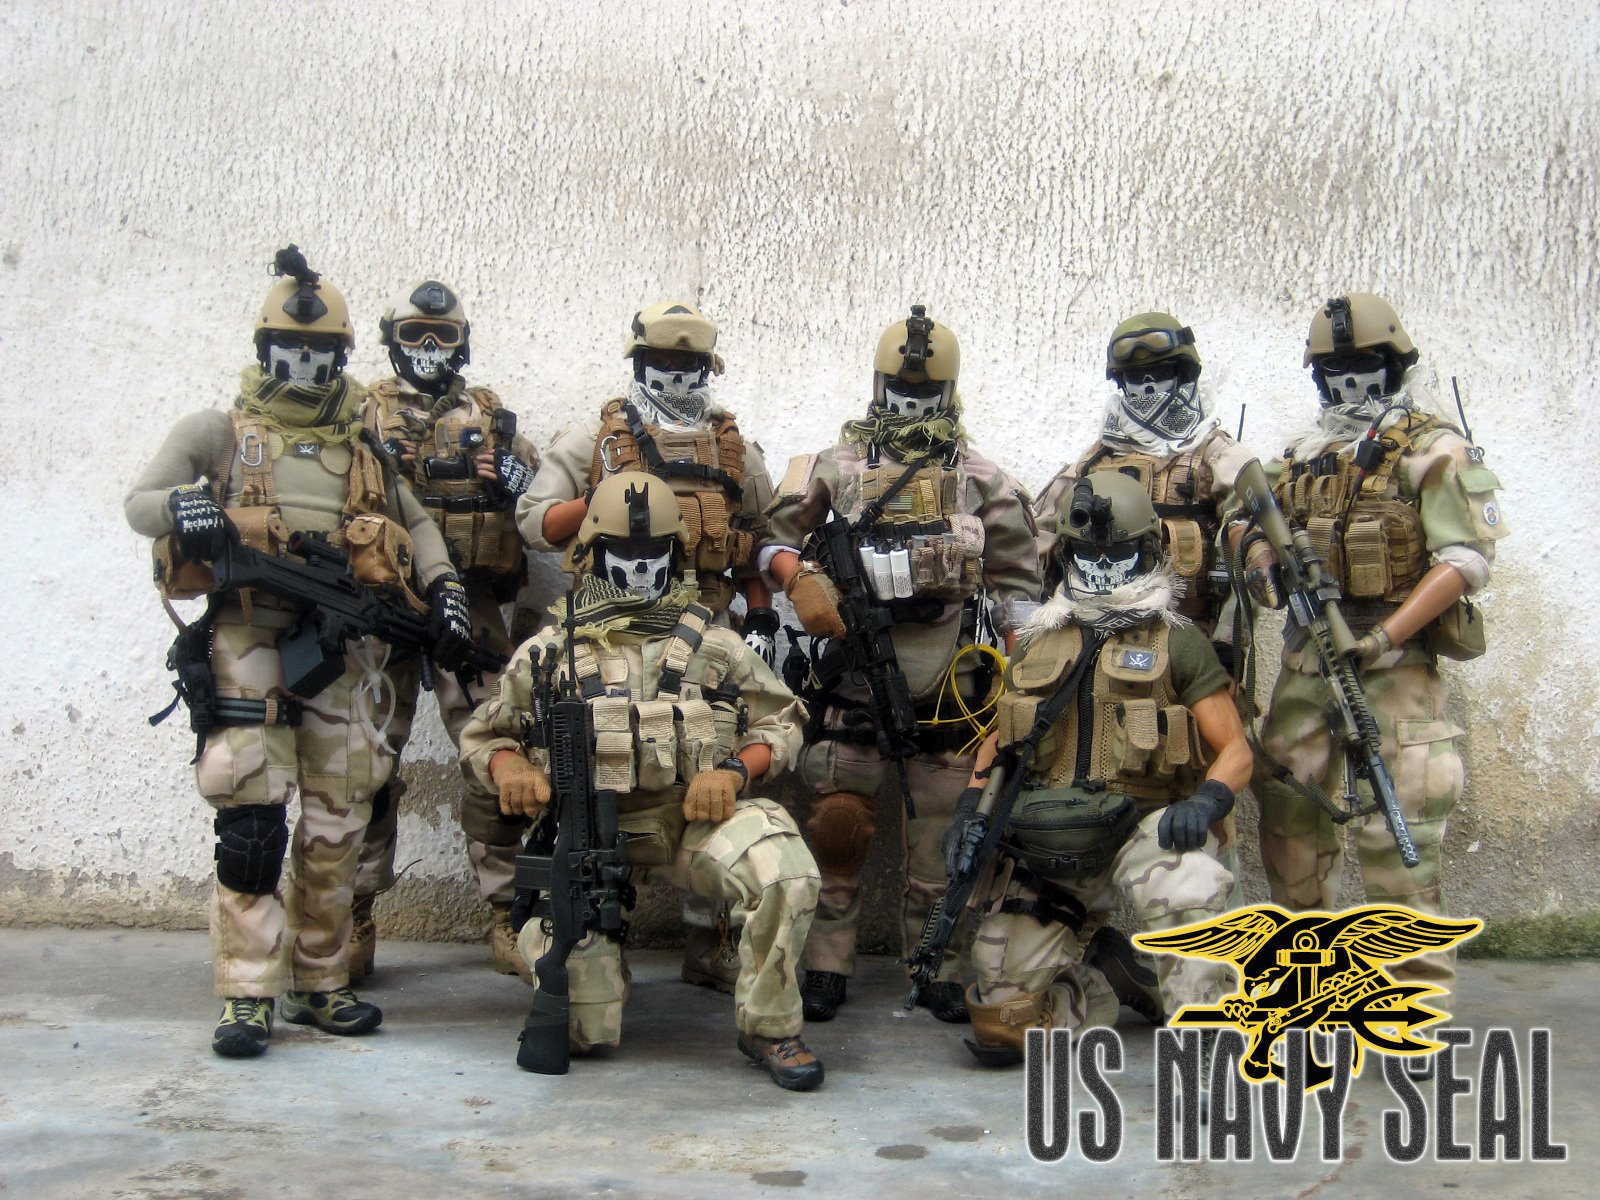 Rights and ResponsibilityNavy Seal Team 3